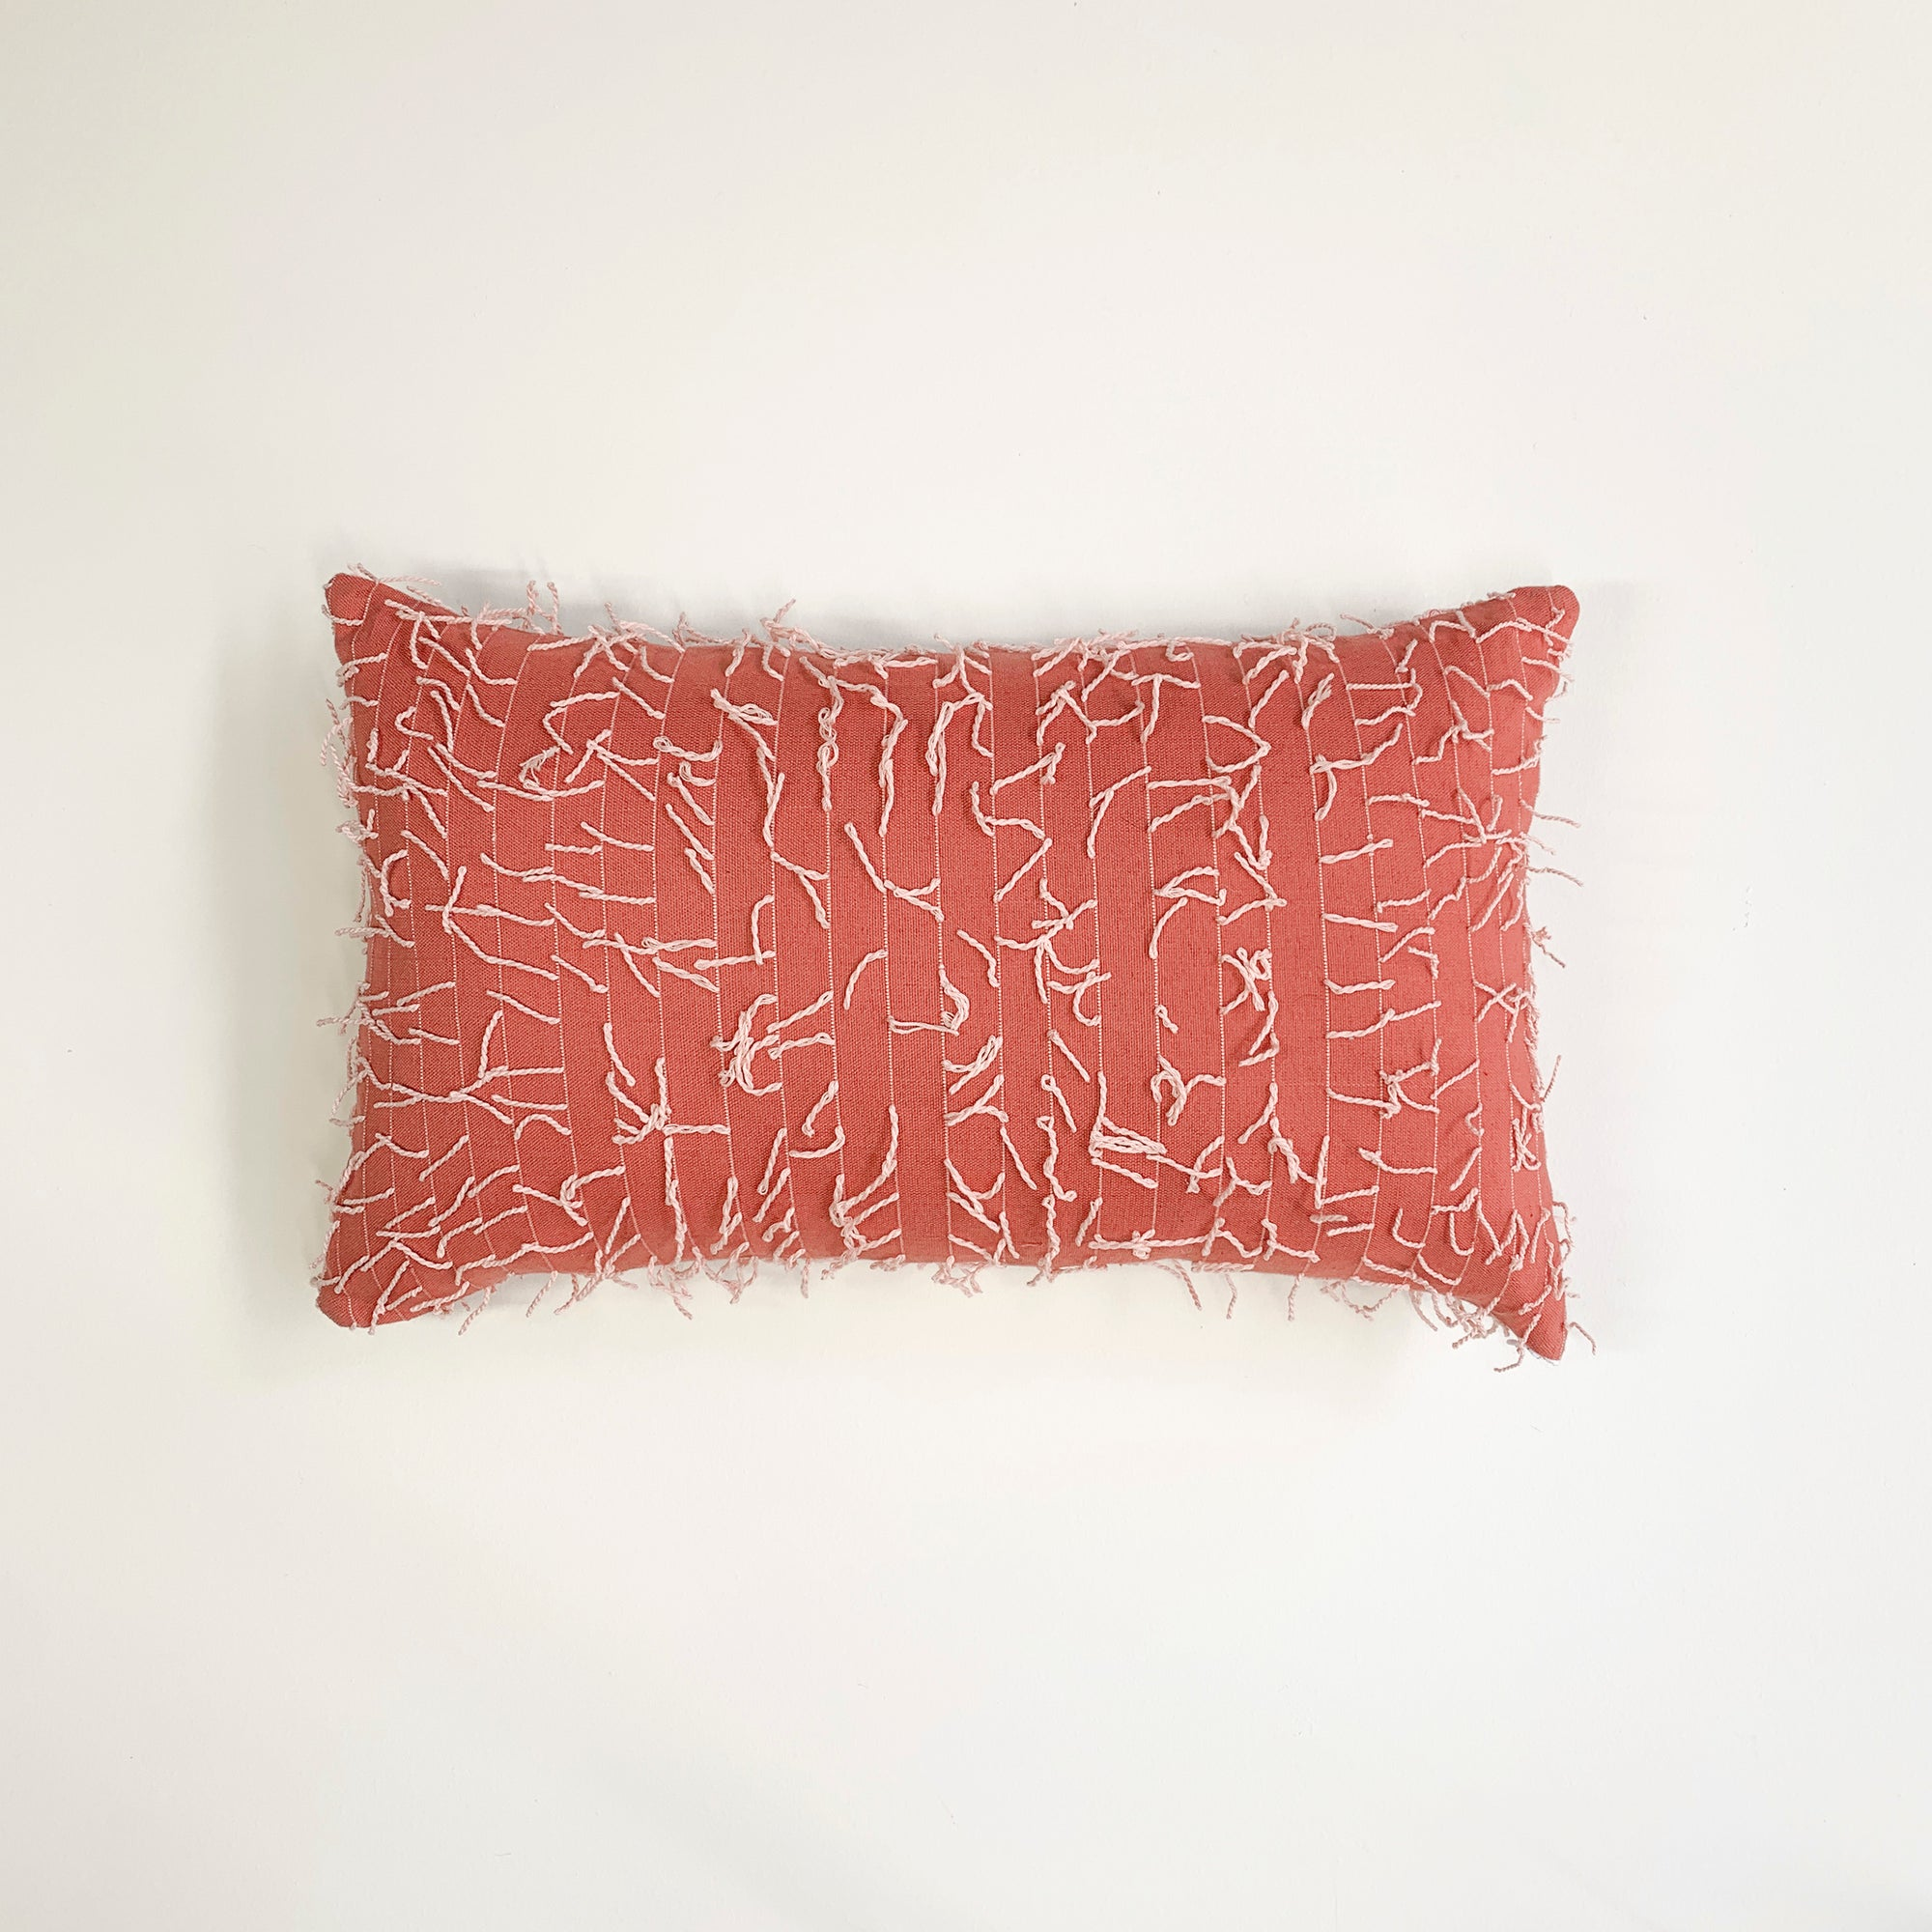 Texturized Cotton Pillow Covers